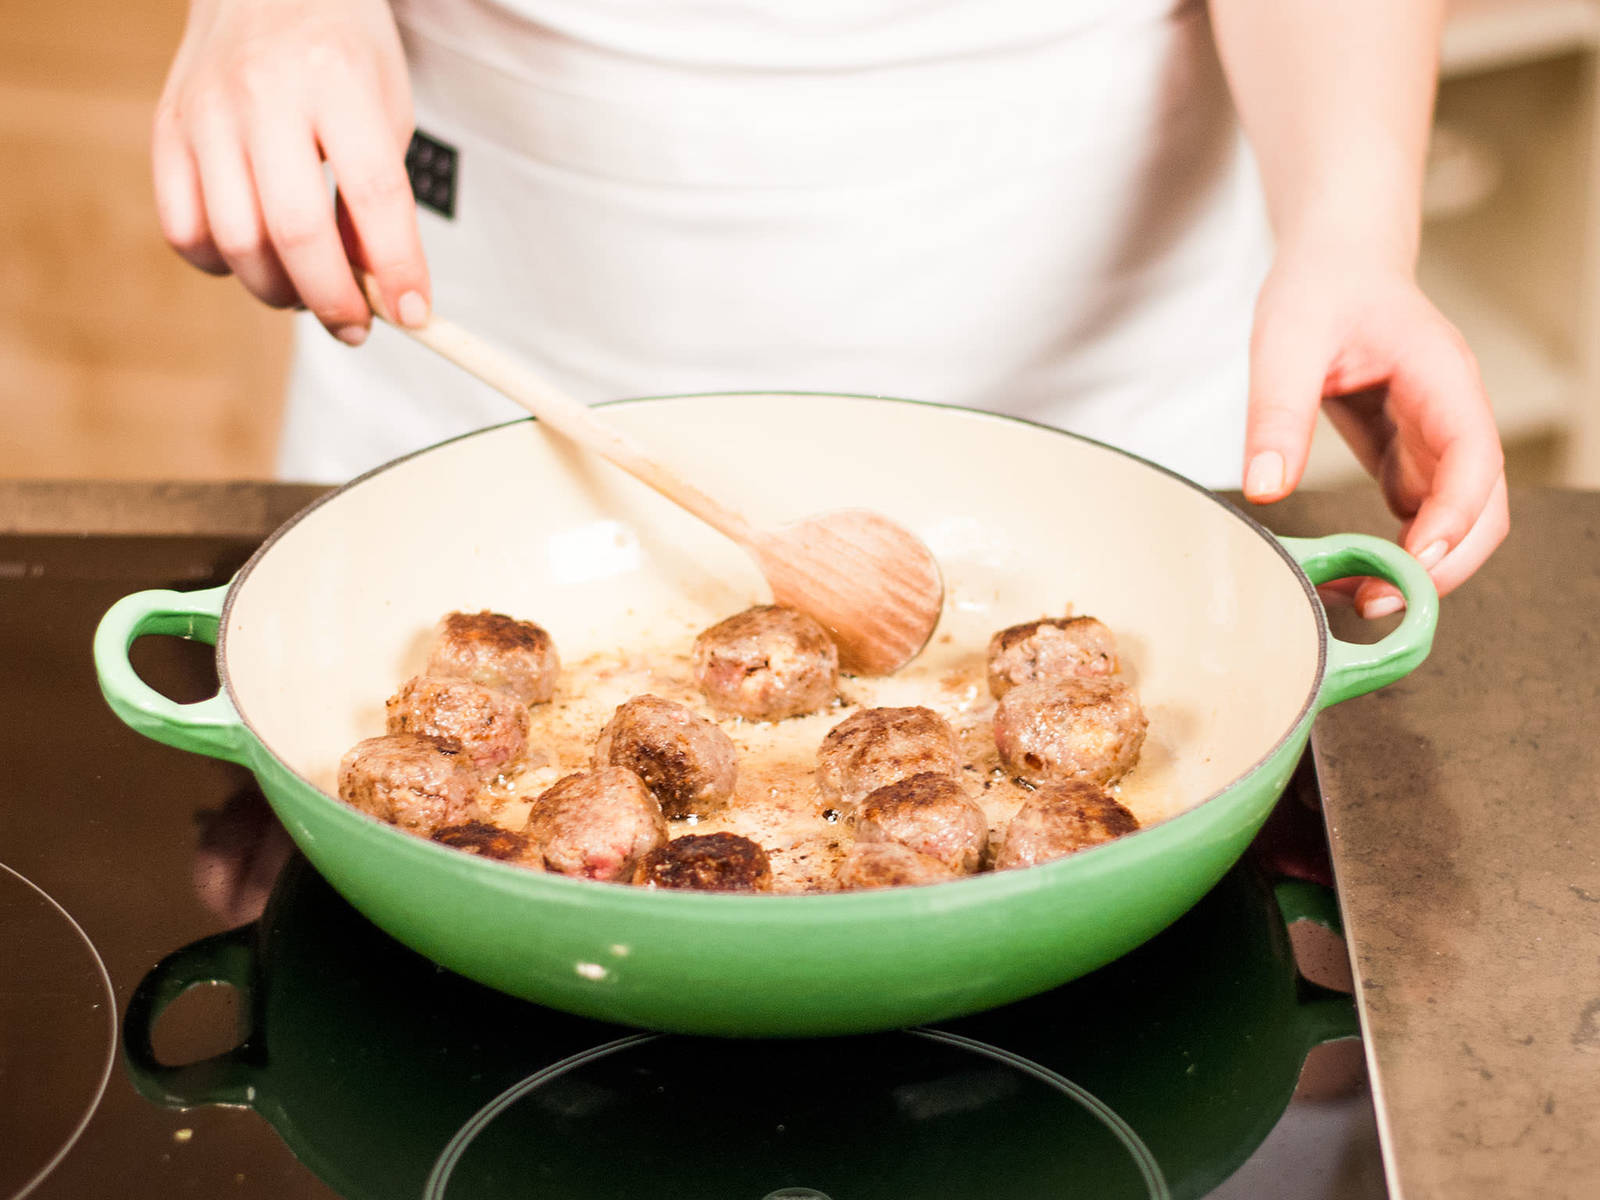 Melt butter in a large frying pan and brown meatballs from all sides for approx. 15 – 20 min. over medium heat. Make sure that the pan is not overcrowded. Remove cooked meatballs from the pan and set aside.